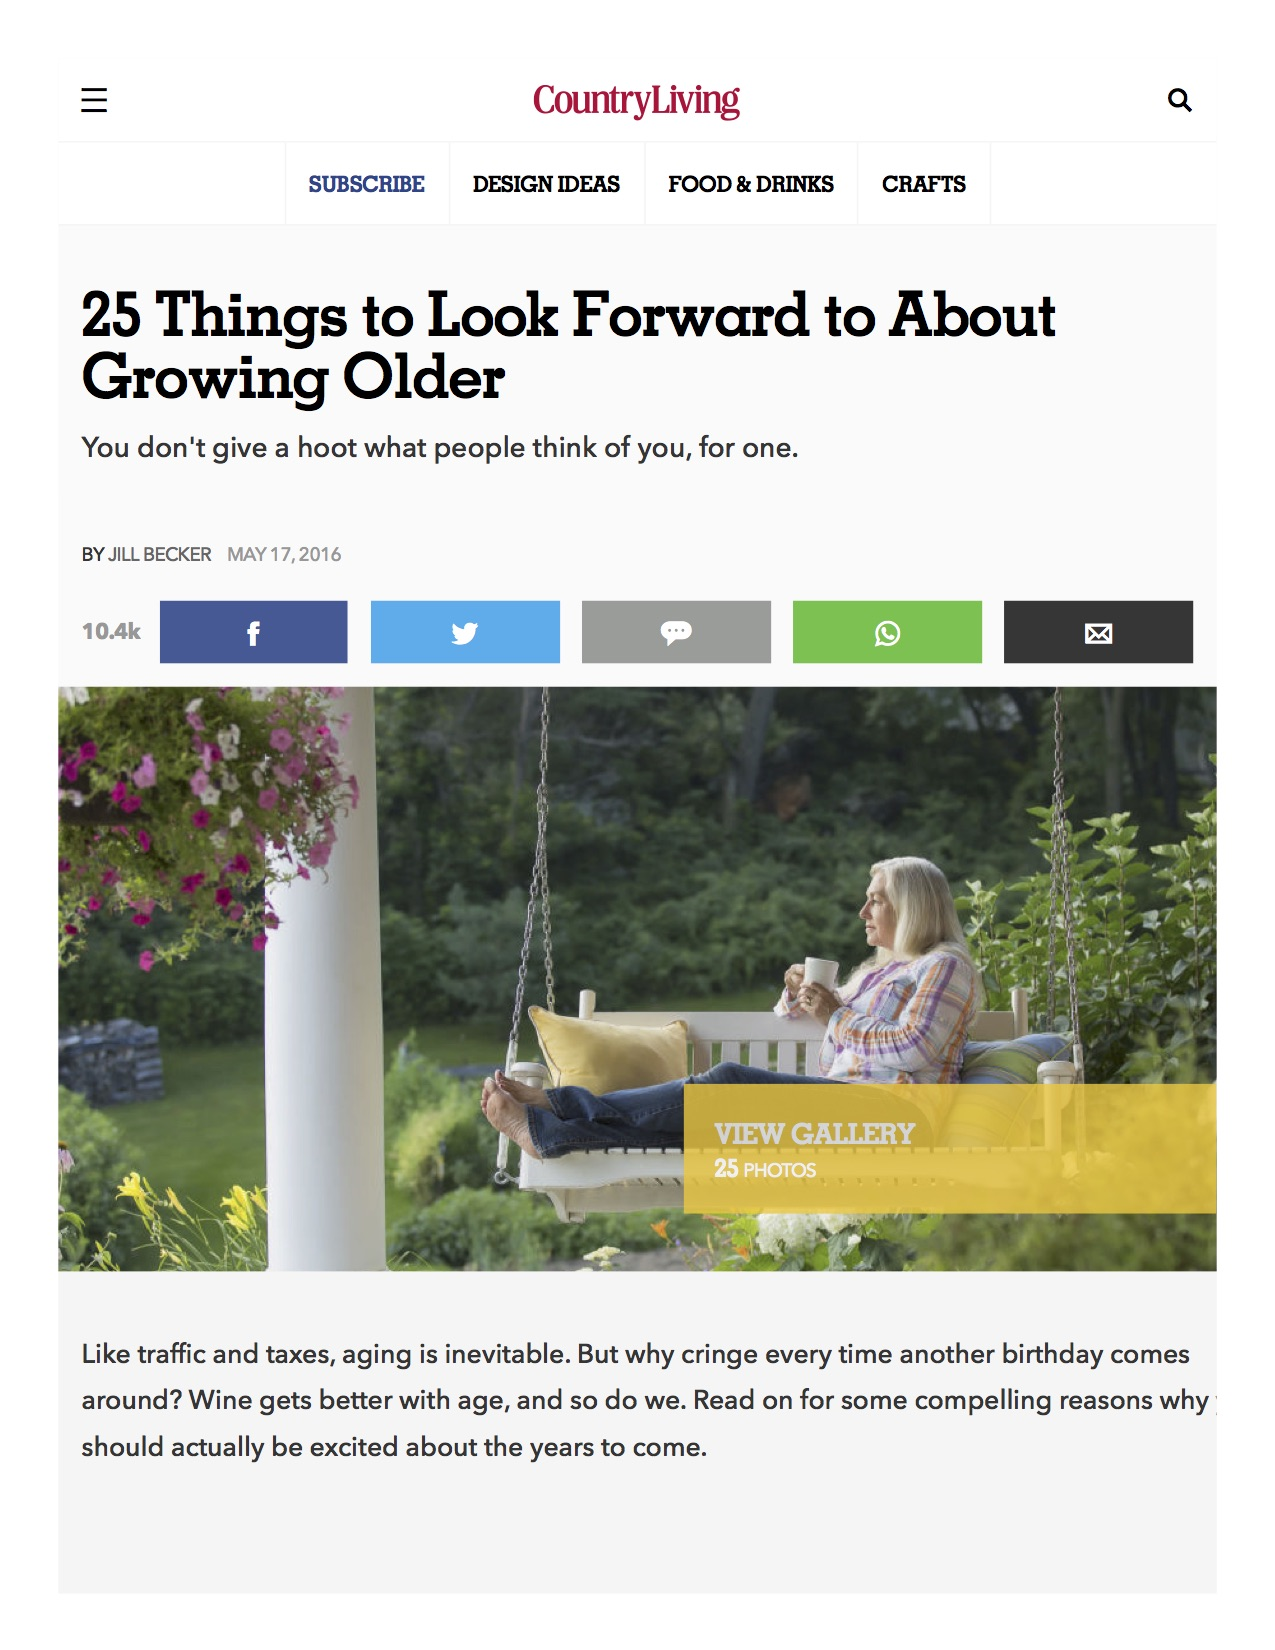 CountryLiving Aging